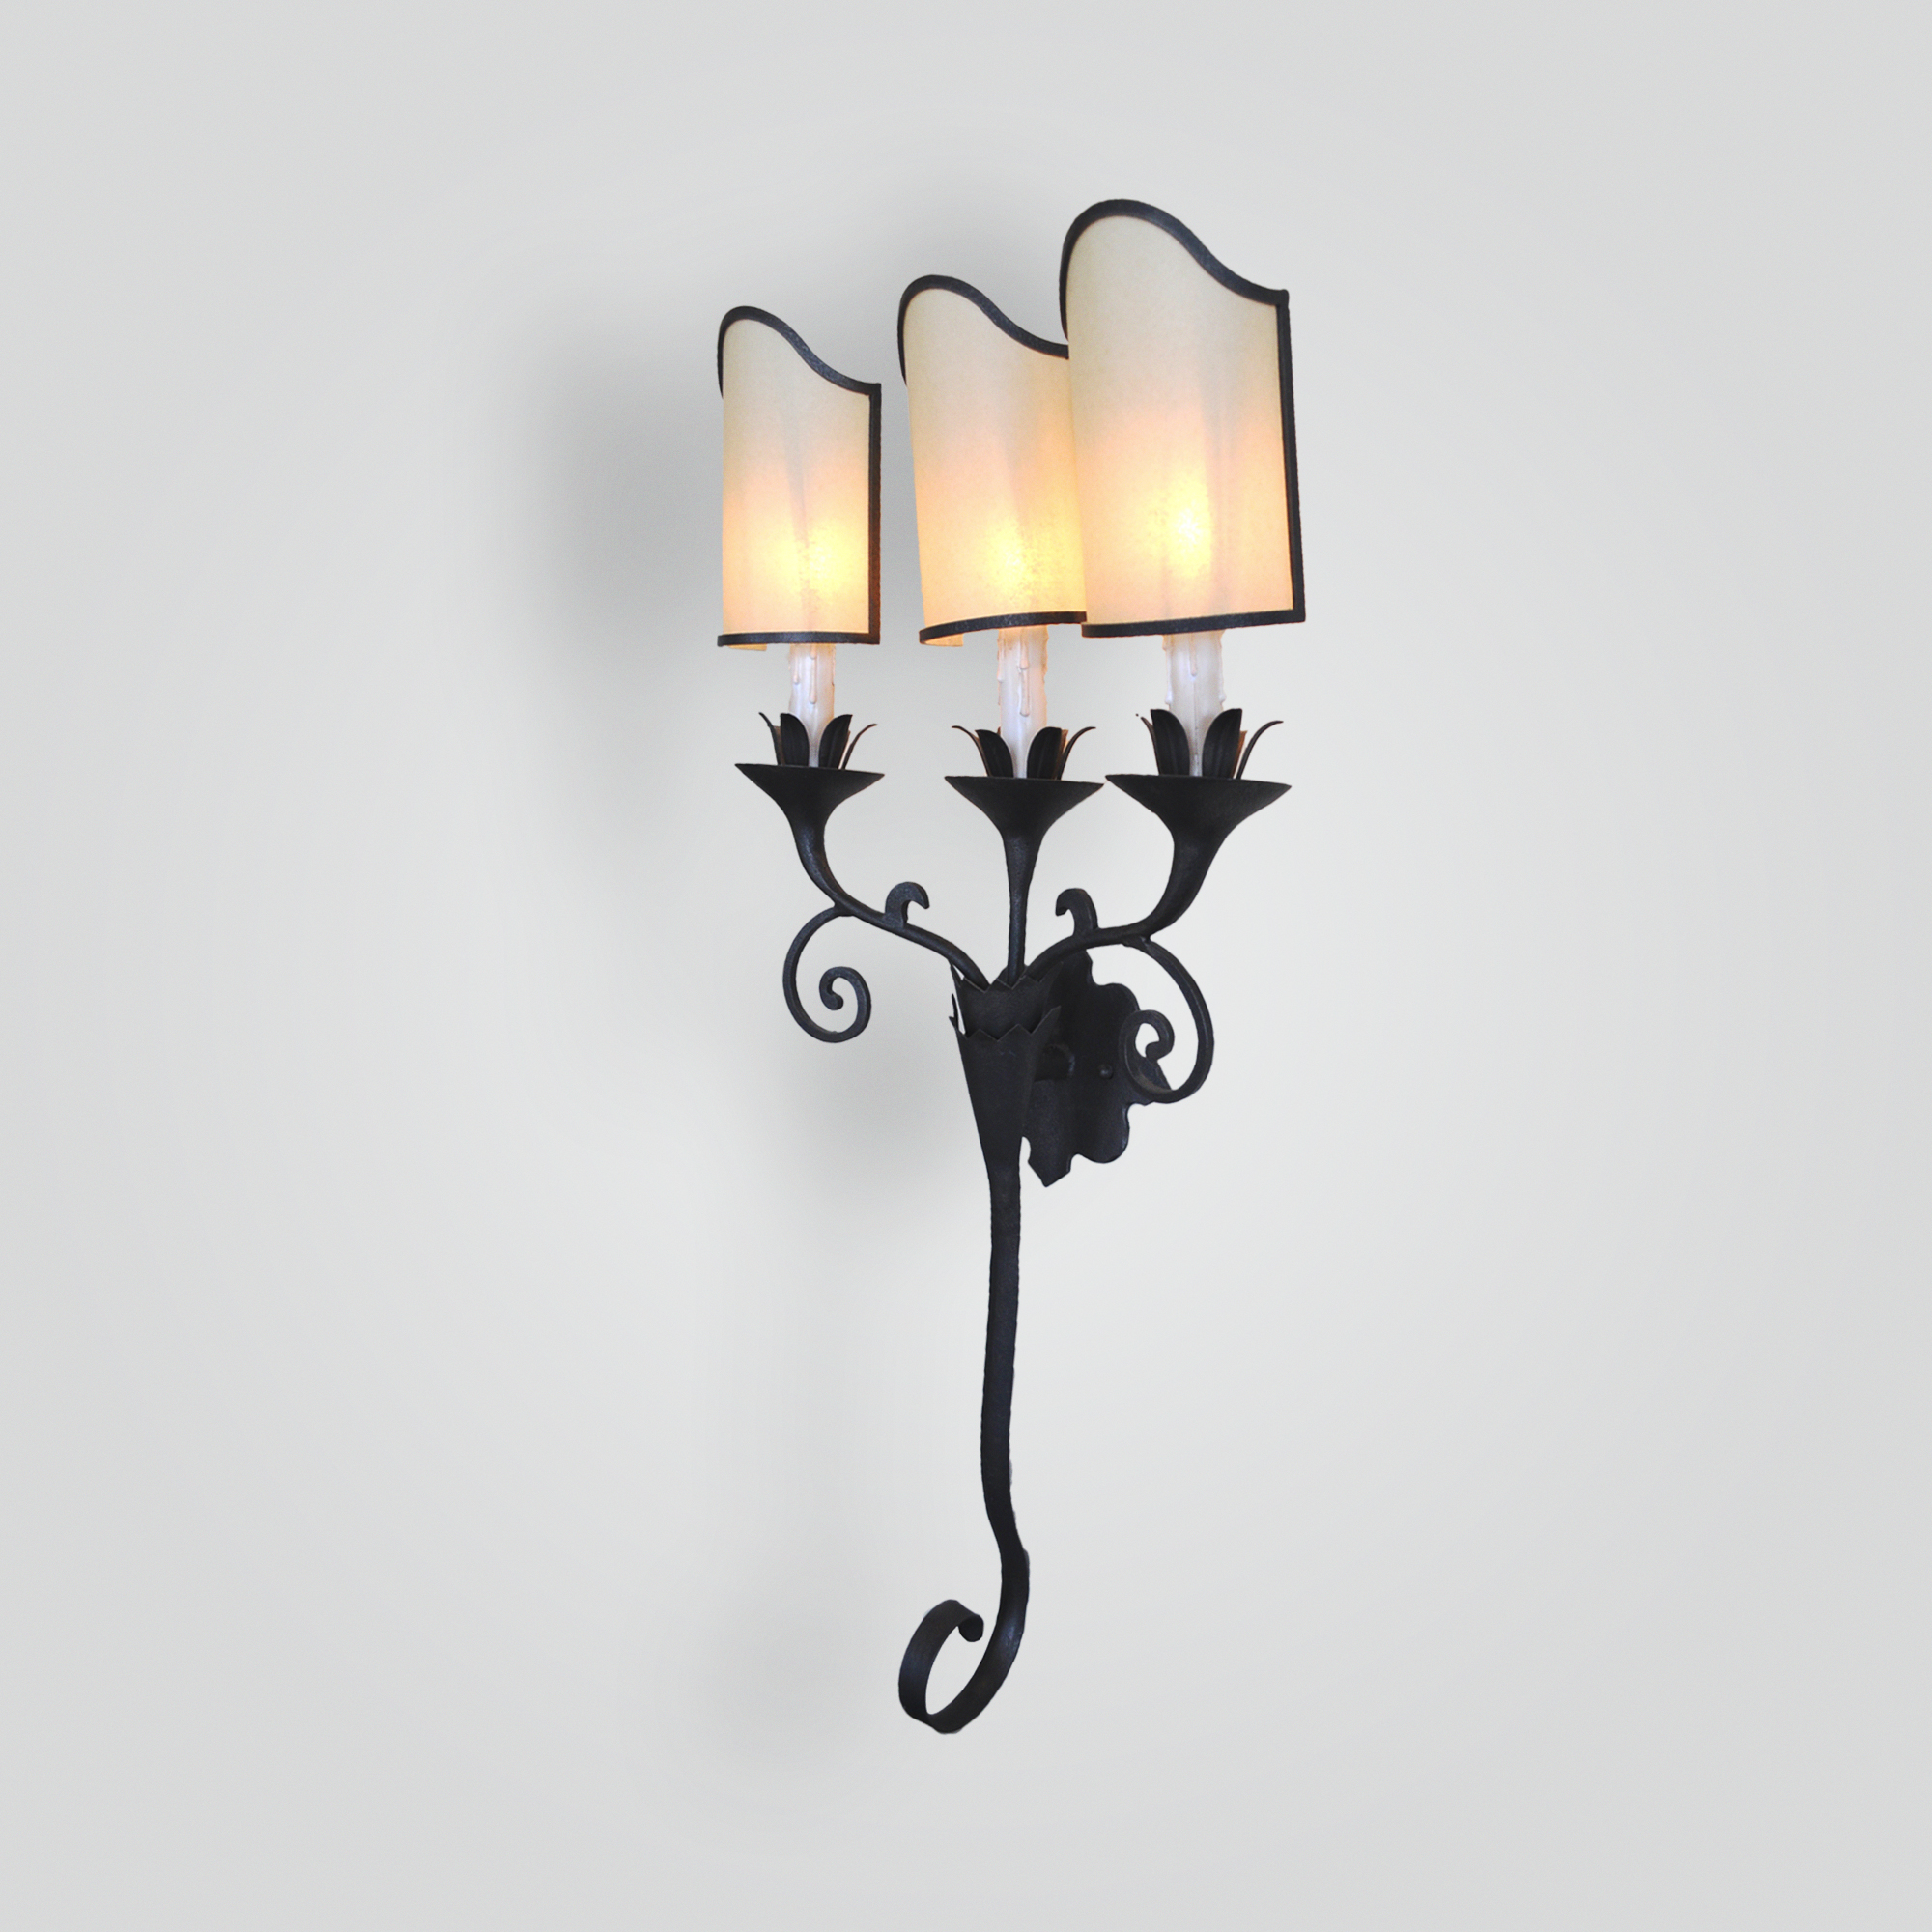 5282-cb3-ir-s-ba-3-light-iron-sconce-with-oiled-parchment-shades – ADG Lighting Collection